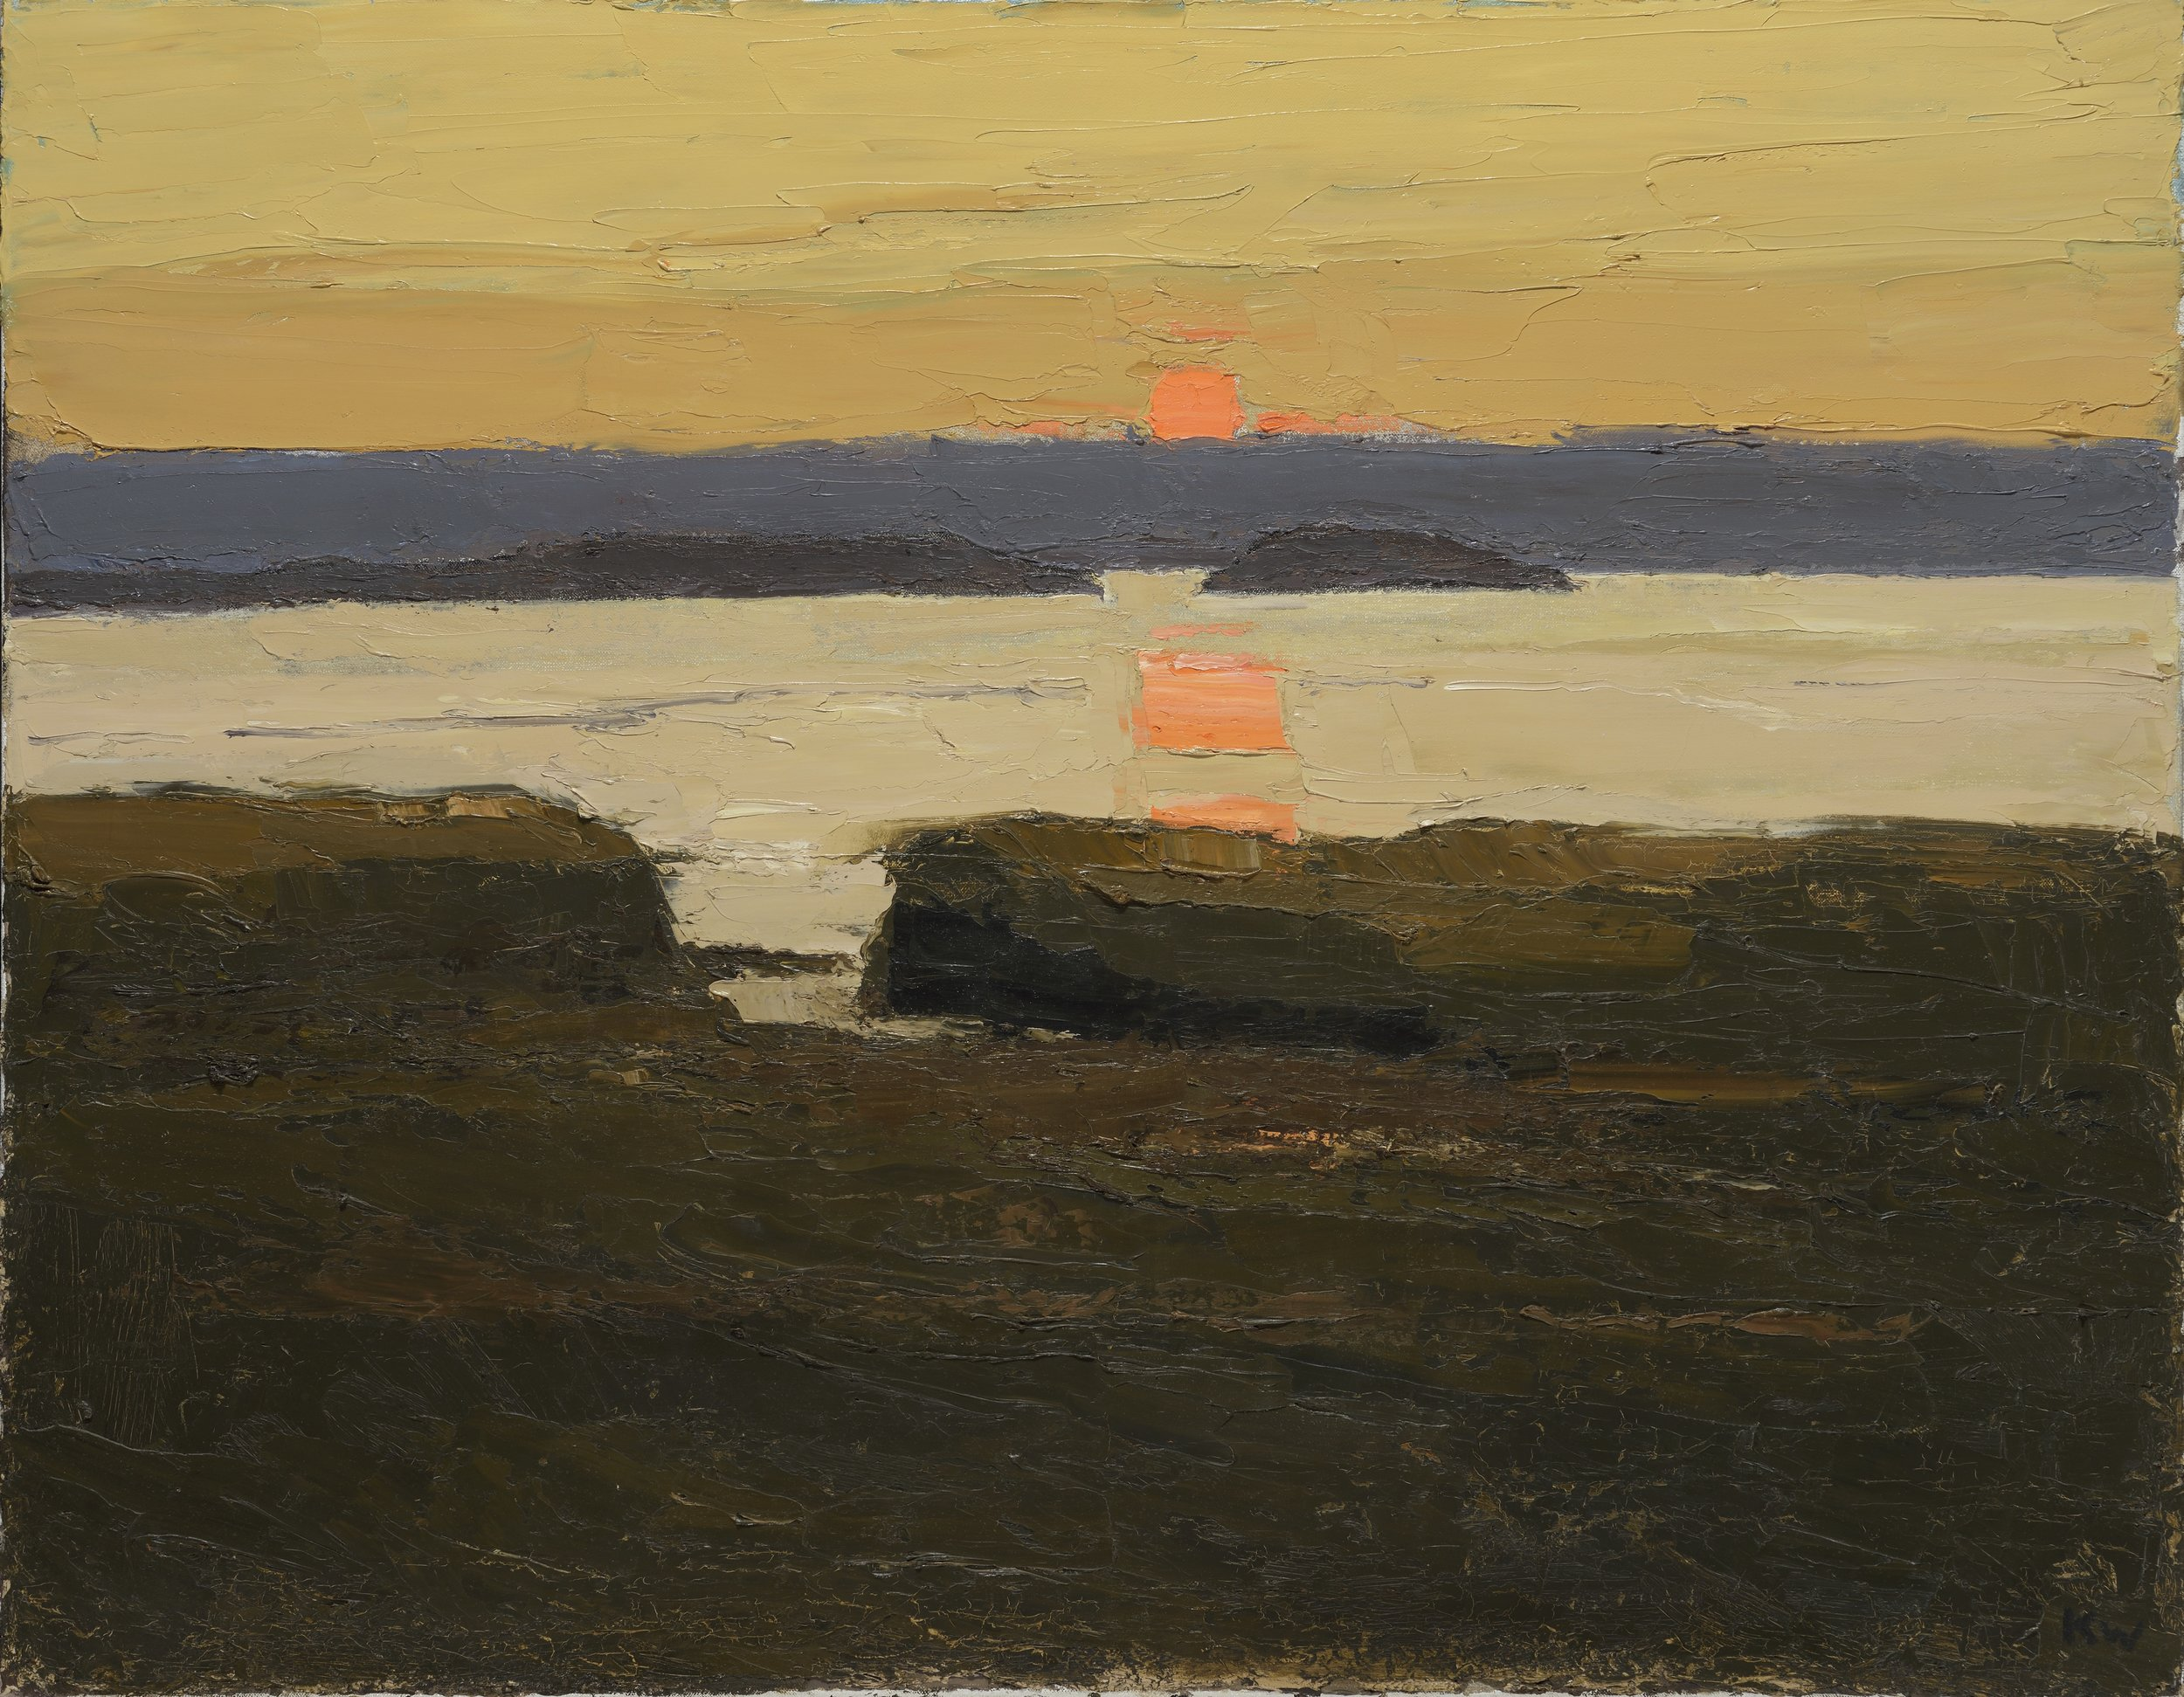 Sir Kyffin Williams RA (1918-2006)  Sunset over Penmon , Jerwood Collection. © By permission of Llyfrgell Genedlaethol Cymru/The National Library of Wales.